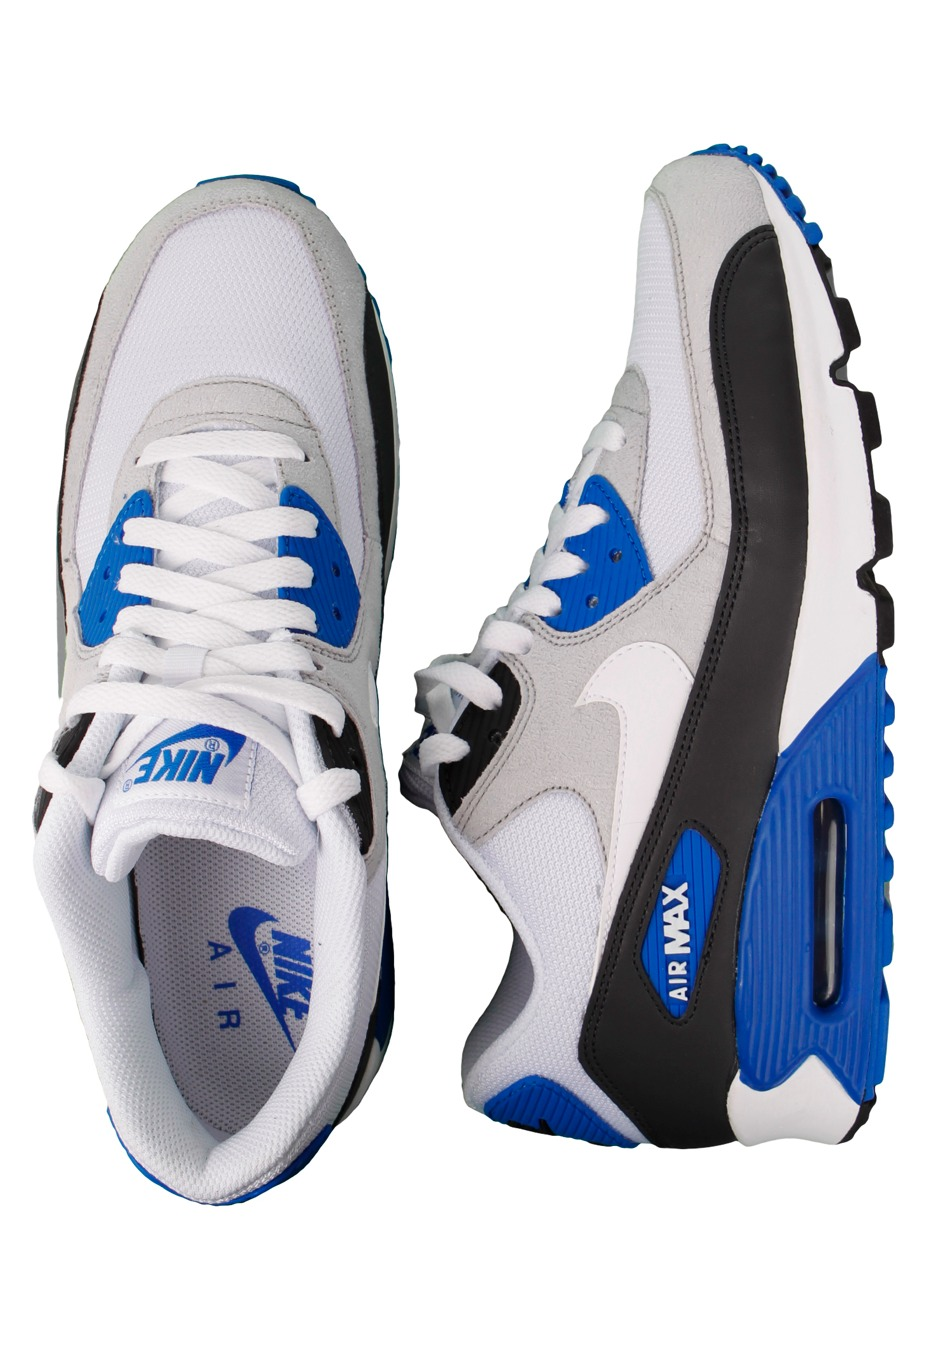 1390407ded5f ... Nike - Air Max 90 AnthraciteWhiteObsidianSoar - Shoes - Impericon.com  UK Air Max 90 Black White ...